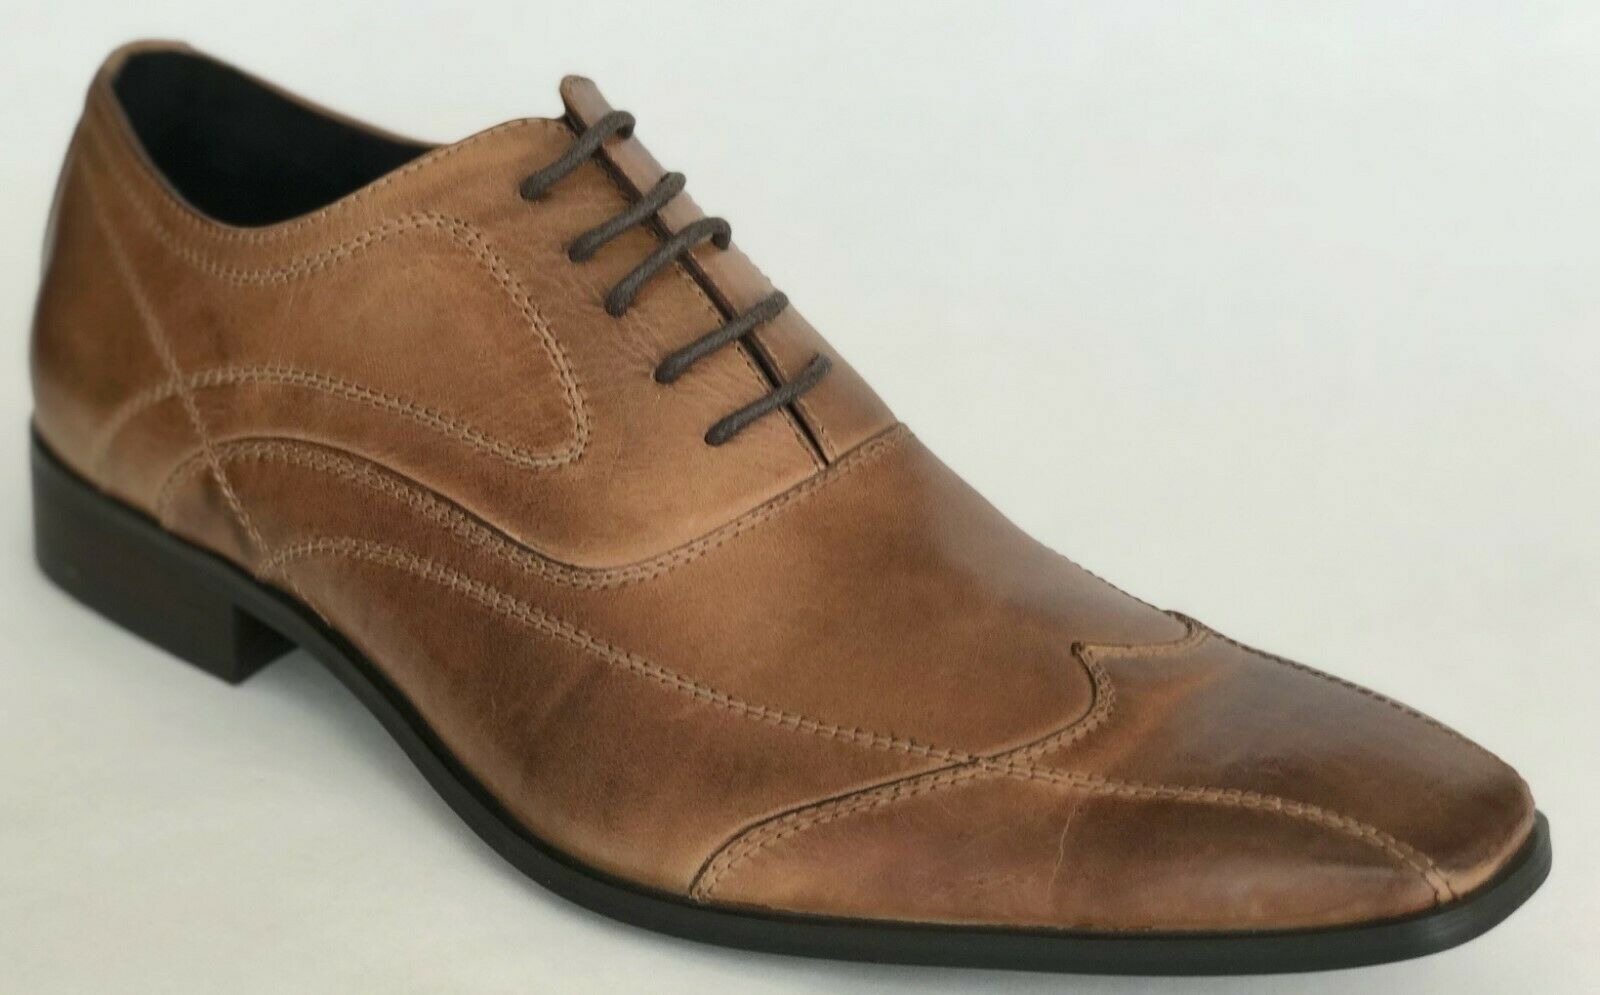 Kennet Cole Mens Make It Last Tan Leather Oxford Dress Shoes 8.5 NEW IN BOX